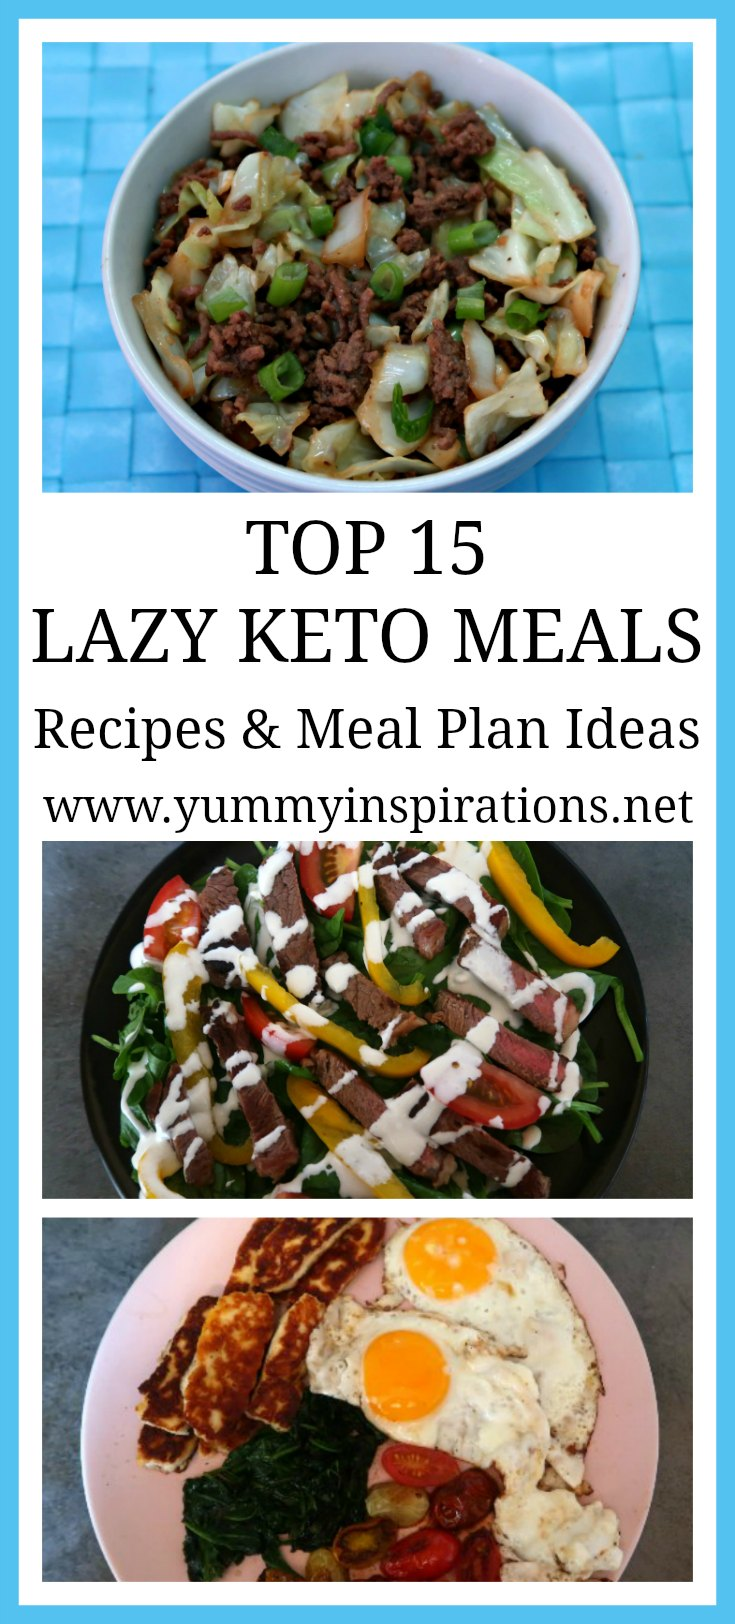 Top 15 Lazy Keto Meals - Easy Low Carb & Ketogenic Diet ...